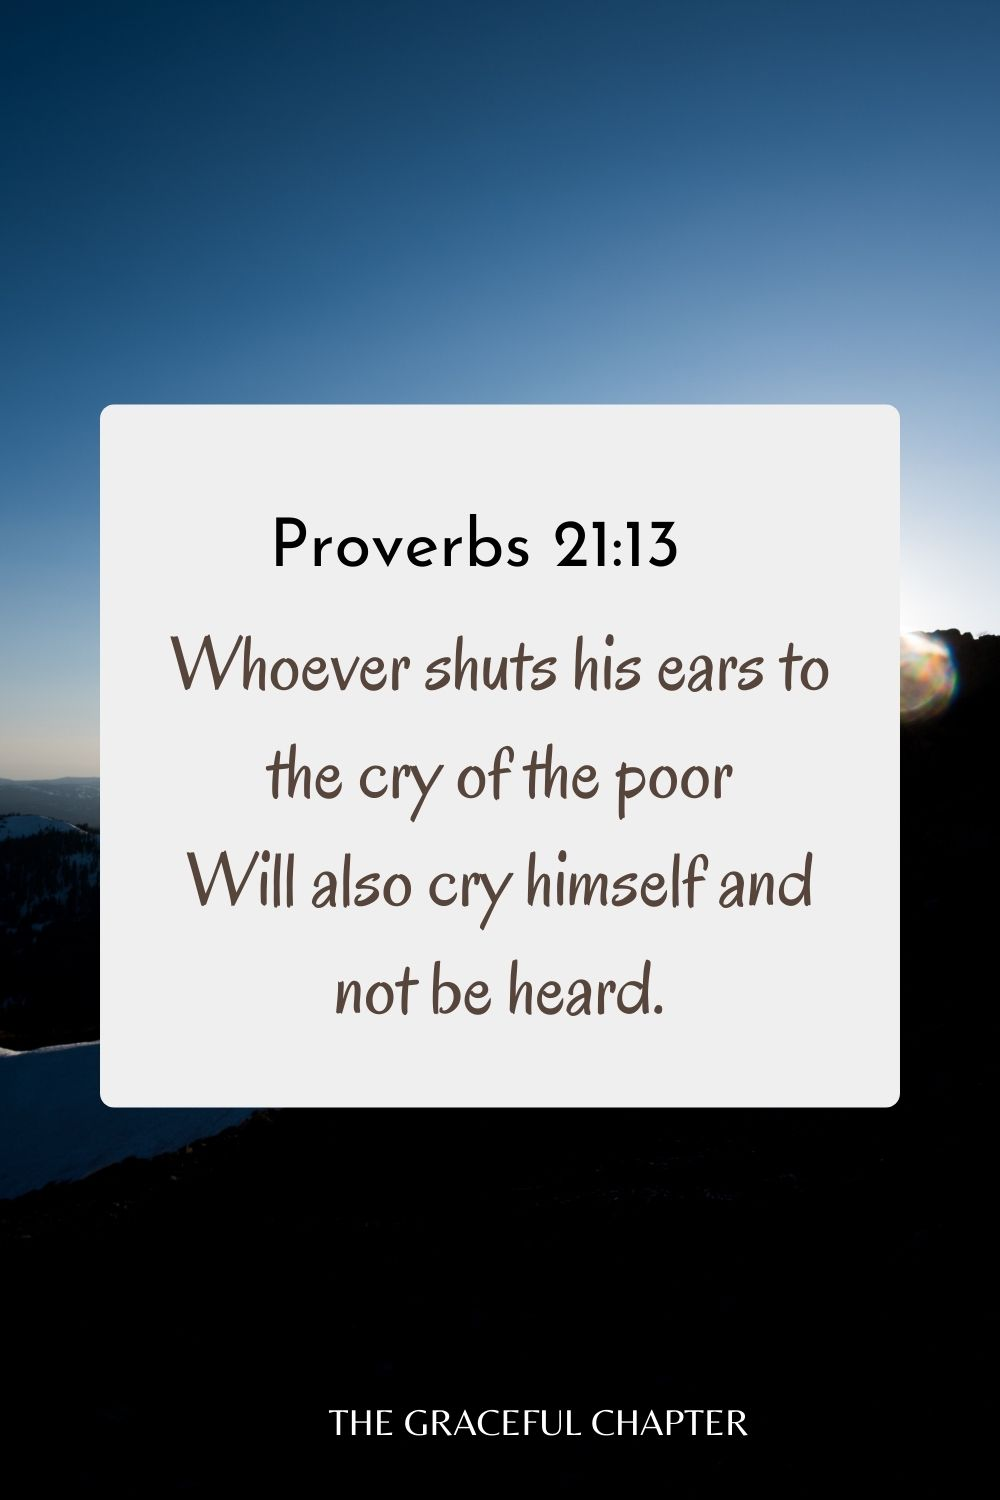 Whoever shuts his ears to the cry of the poor Will also cry himself and not be heard. Proverbs 21:13